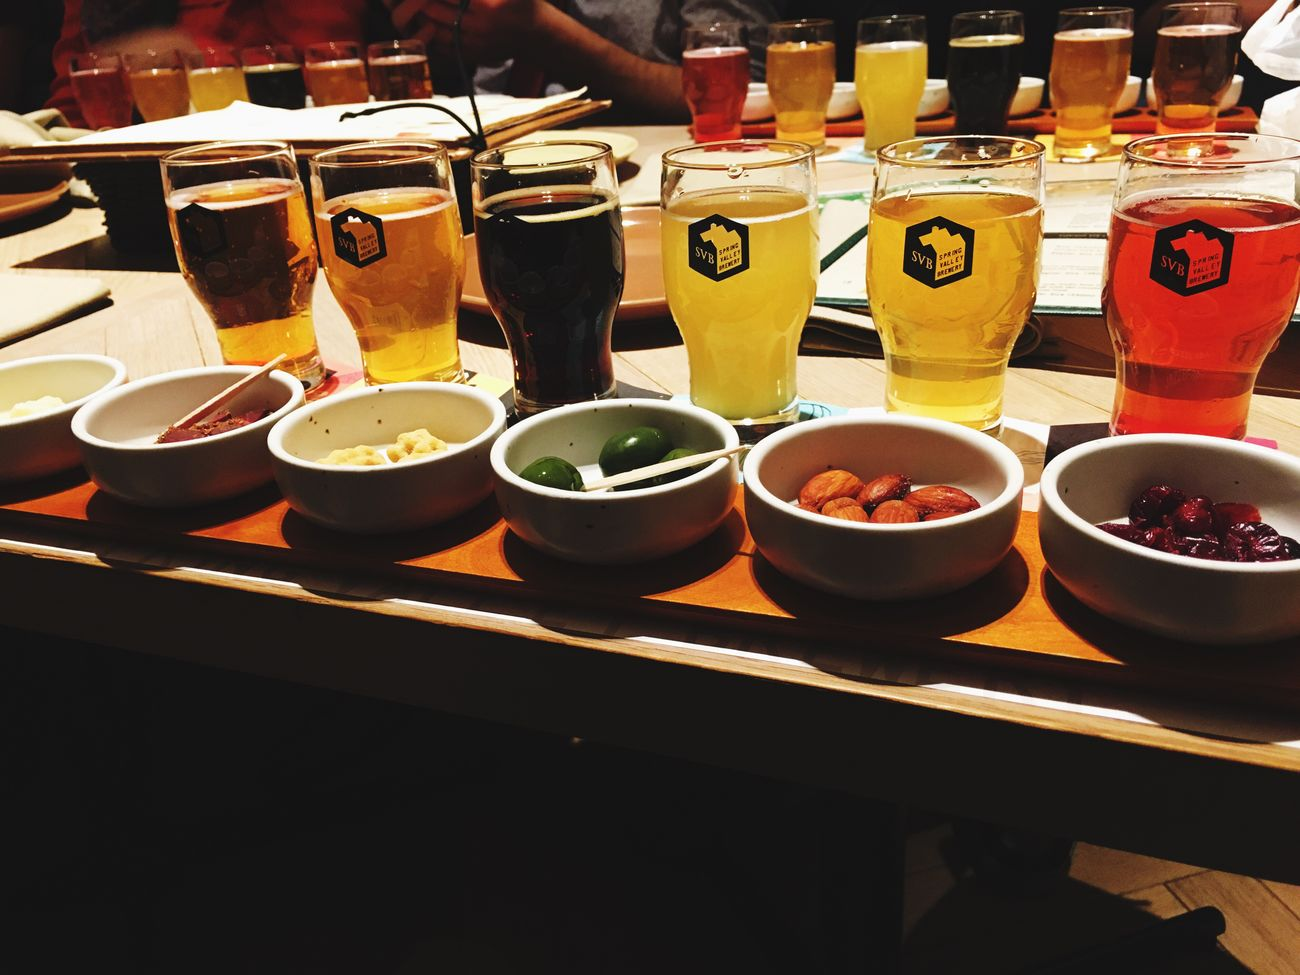 A nice sampling with some really good 'brown lemonade' Food And Drink Beer